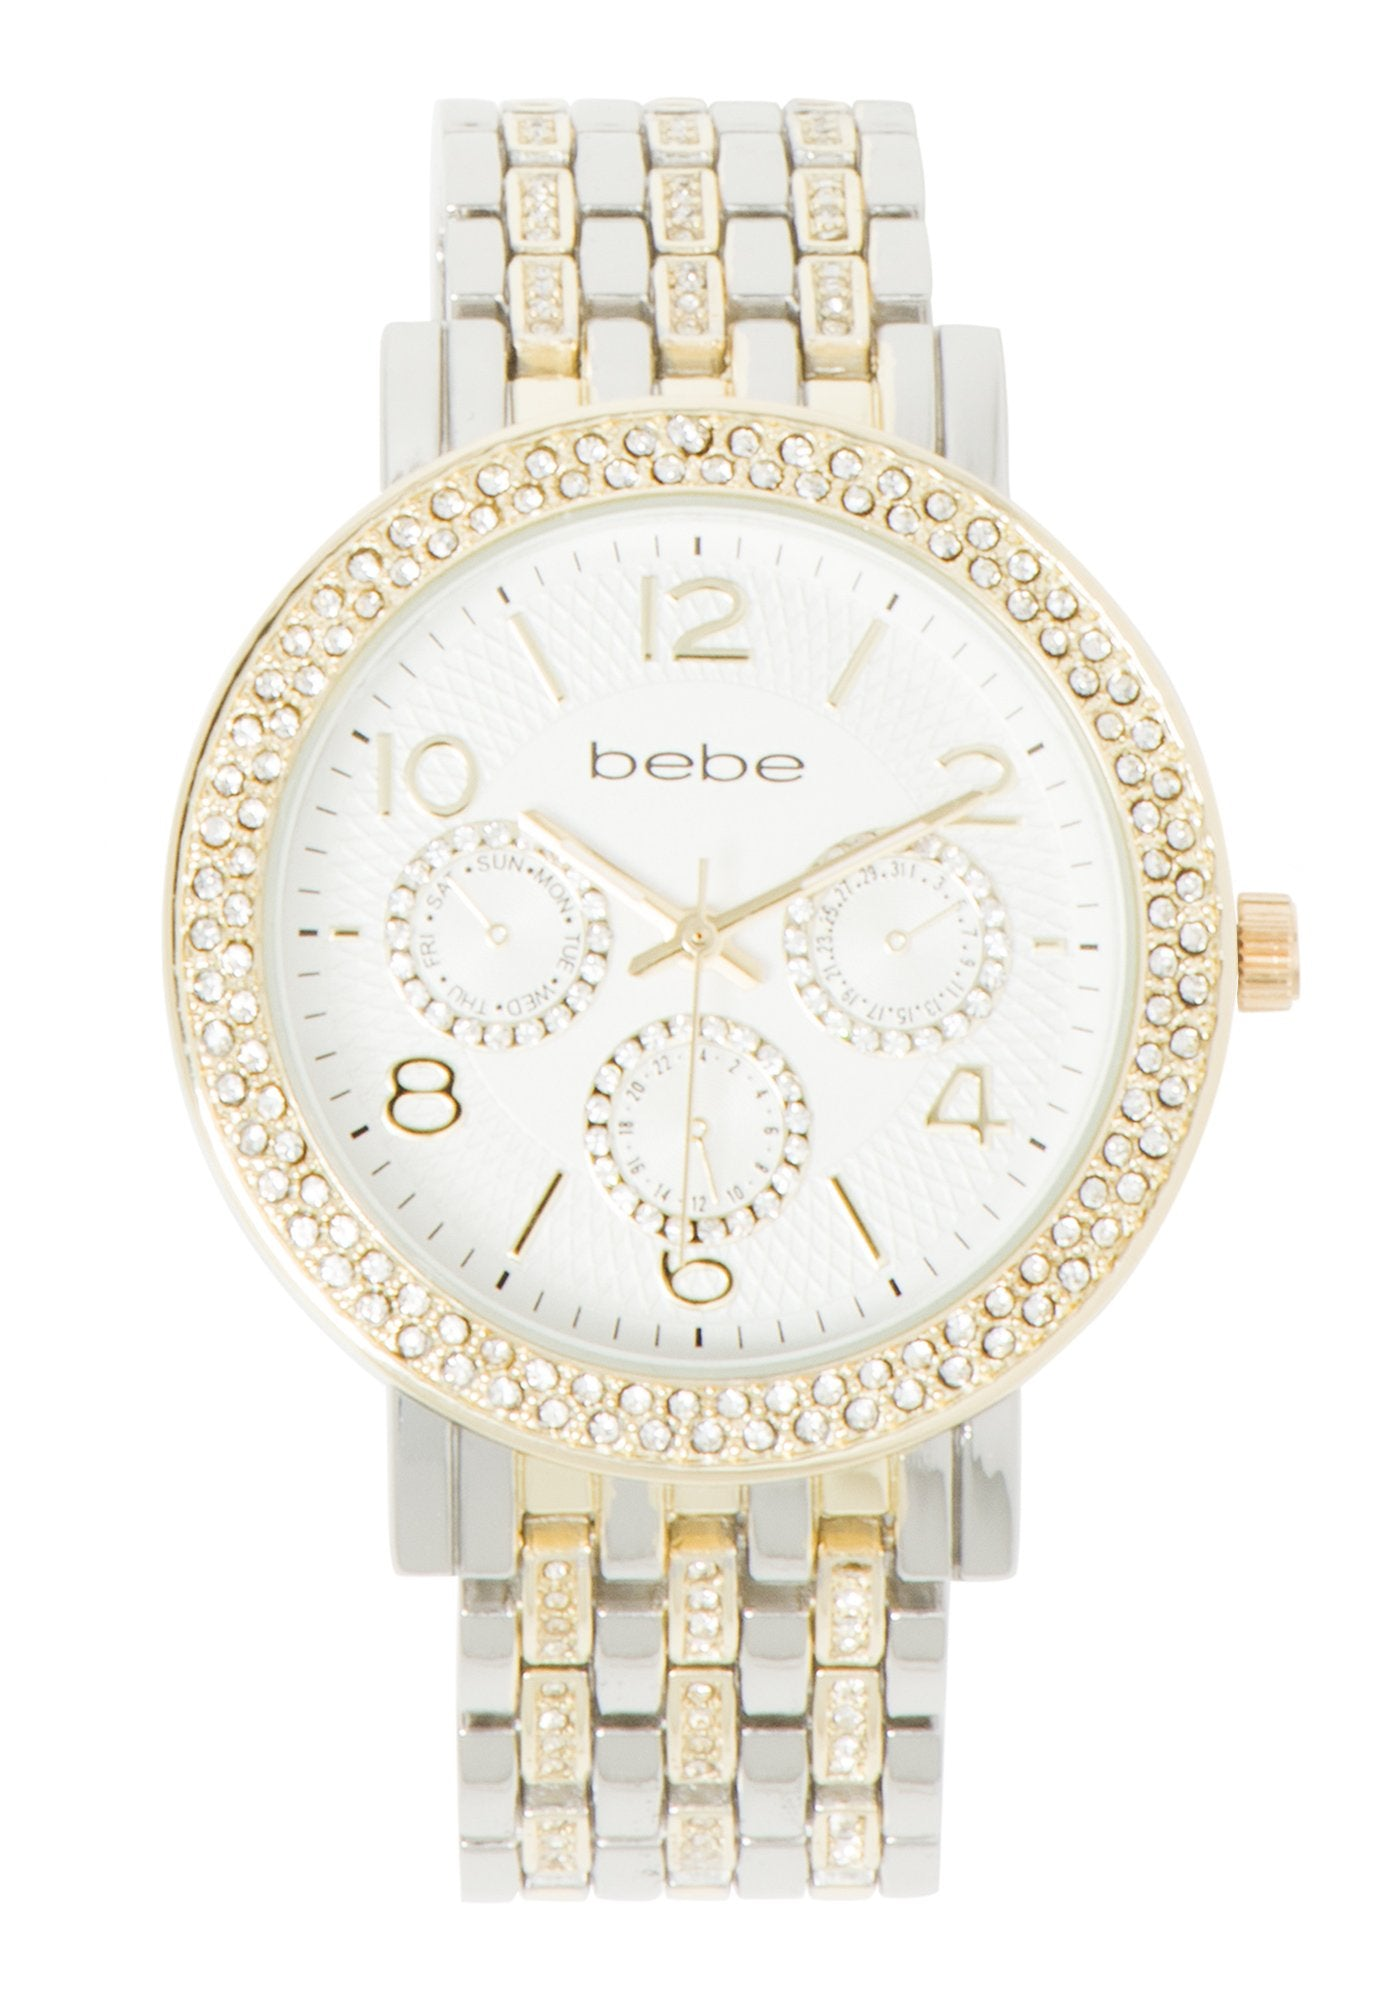 Women's Bebe Two Tone Crystal Watch in SILVER/GOLD Metal